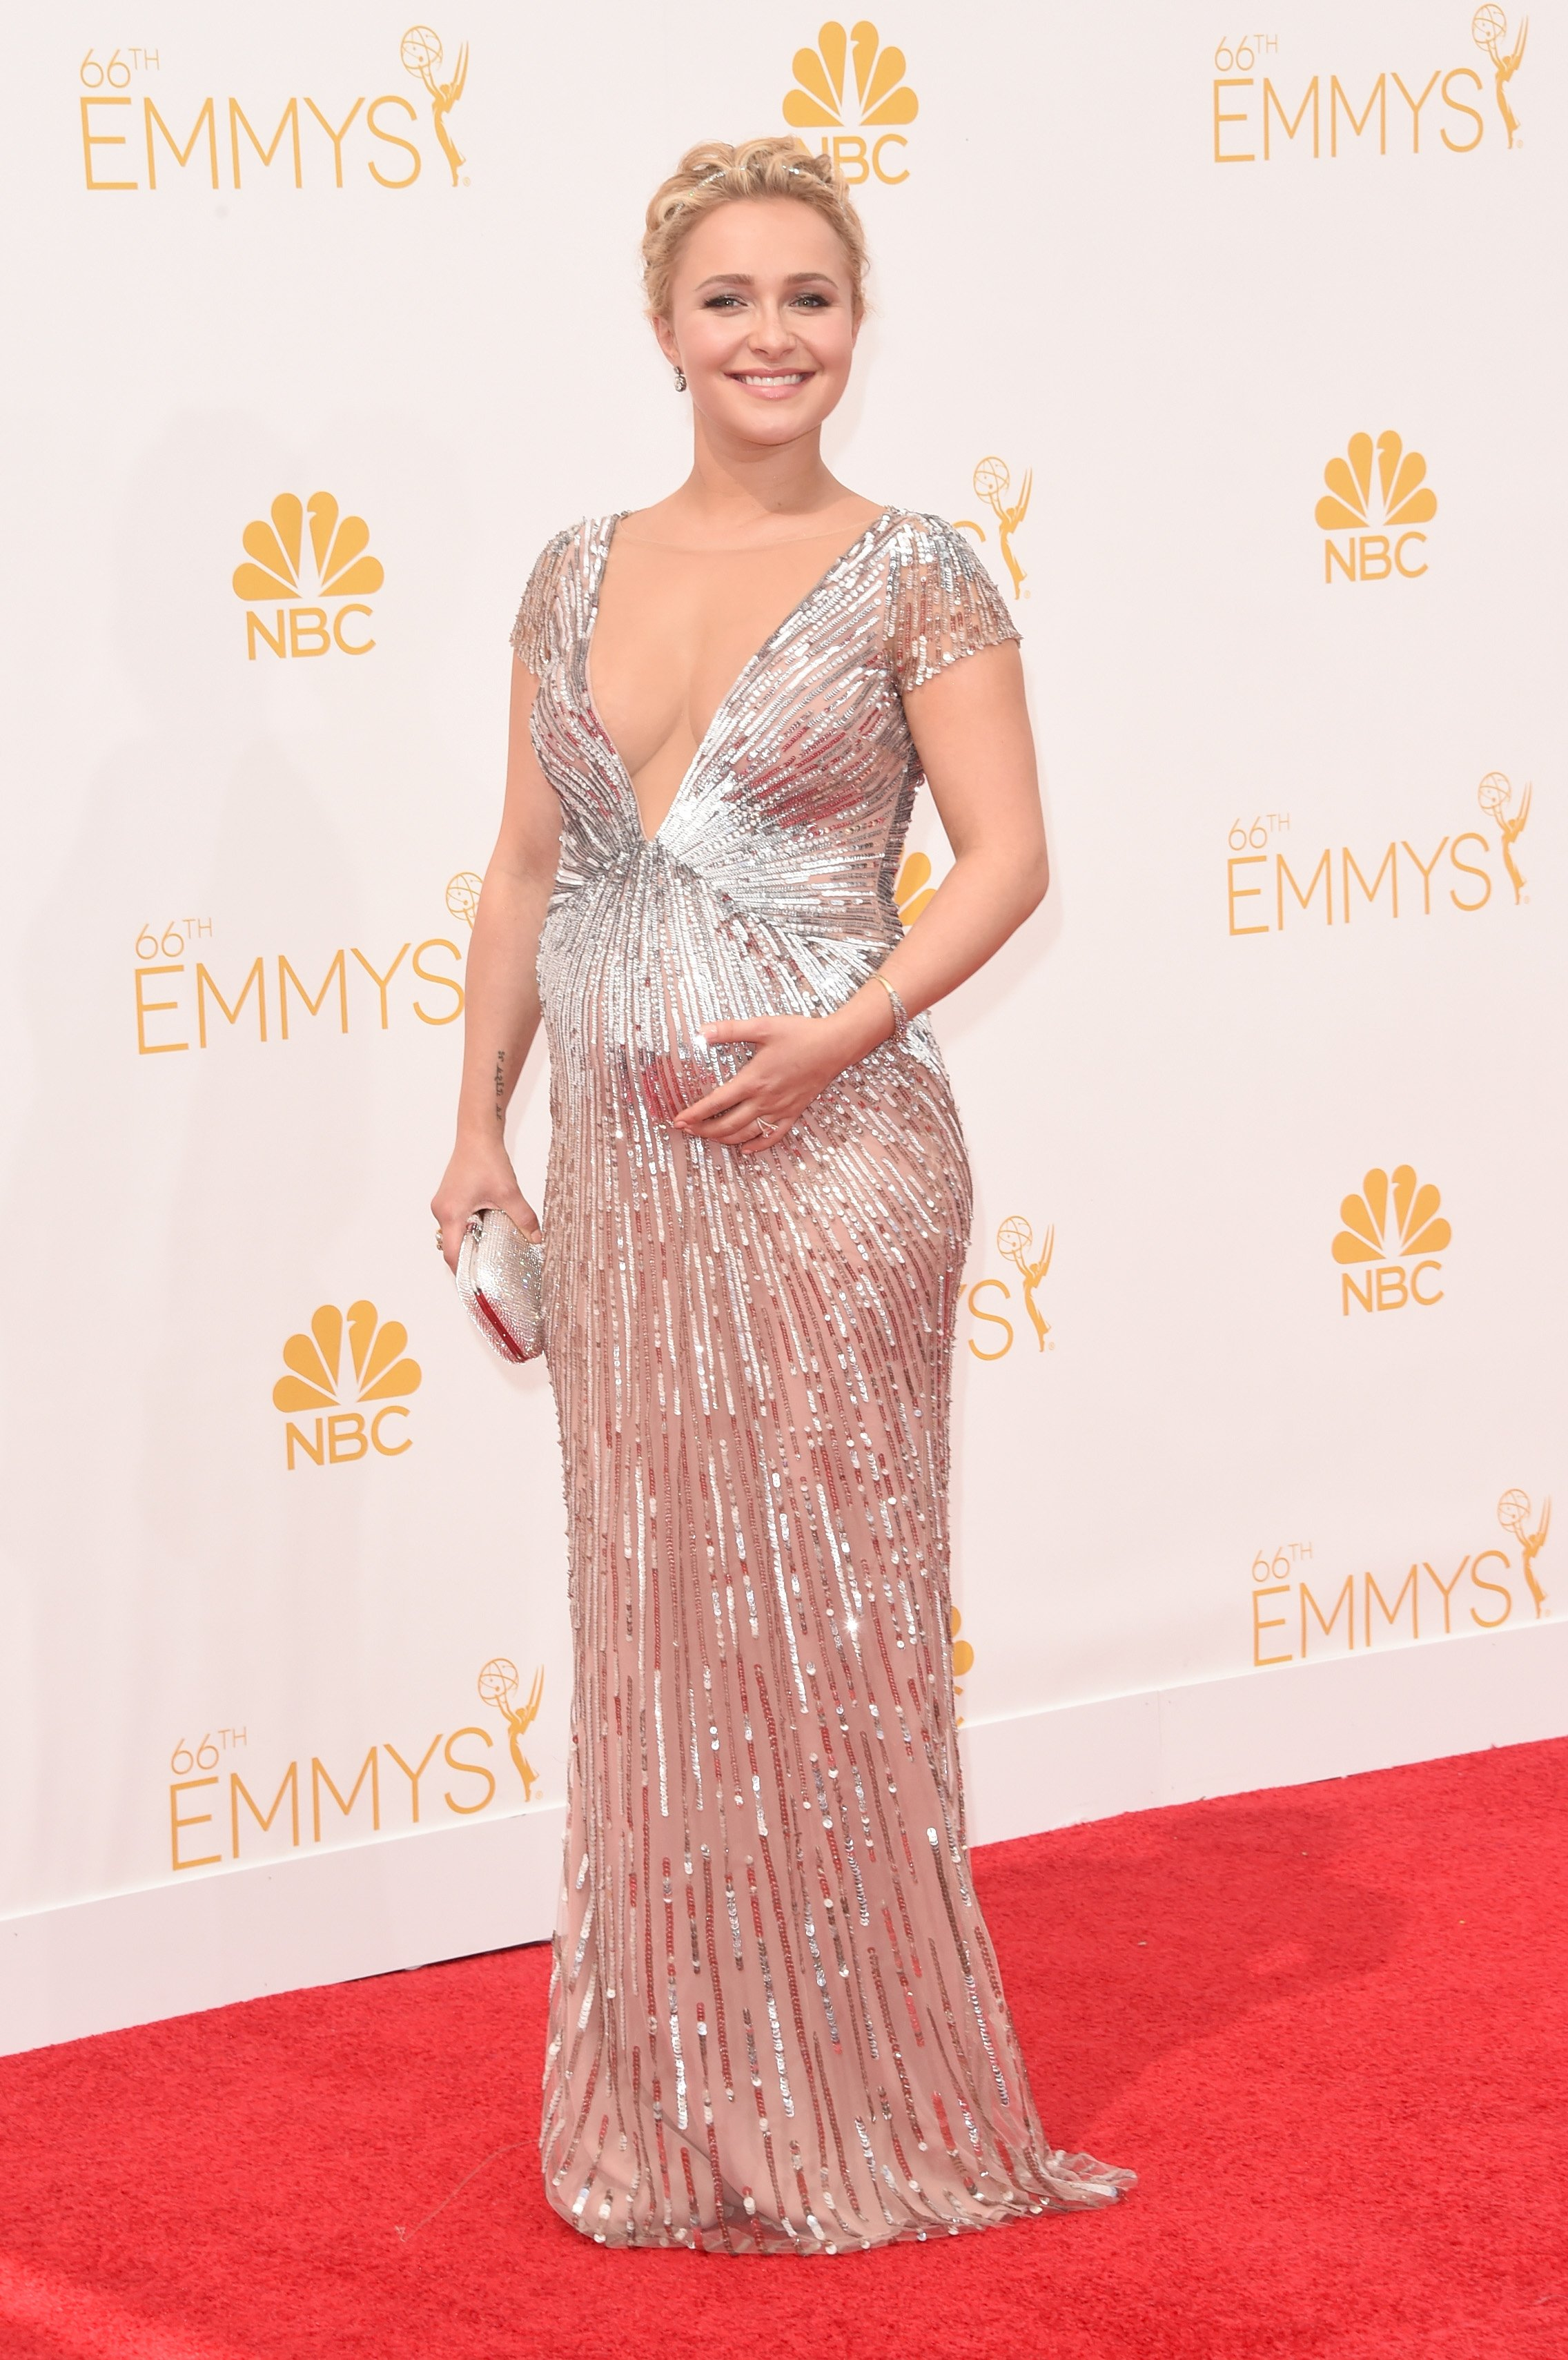 Hayden Panettiere attends the 66th Annual Primetime Emmy Awards held at Nokia Theatre L.A. Live on August 25, 2014 in Los Angeles, California.